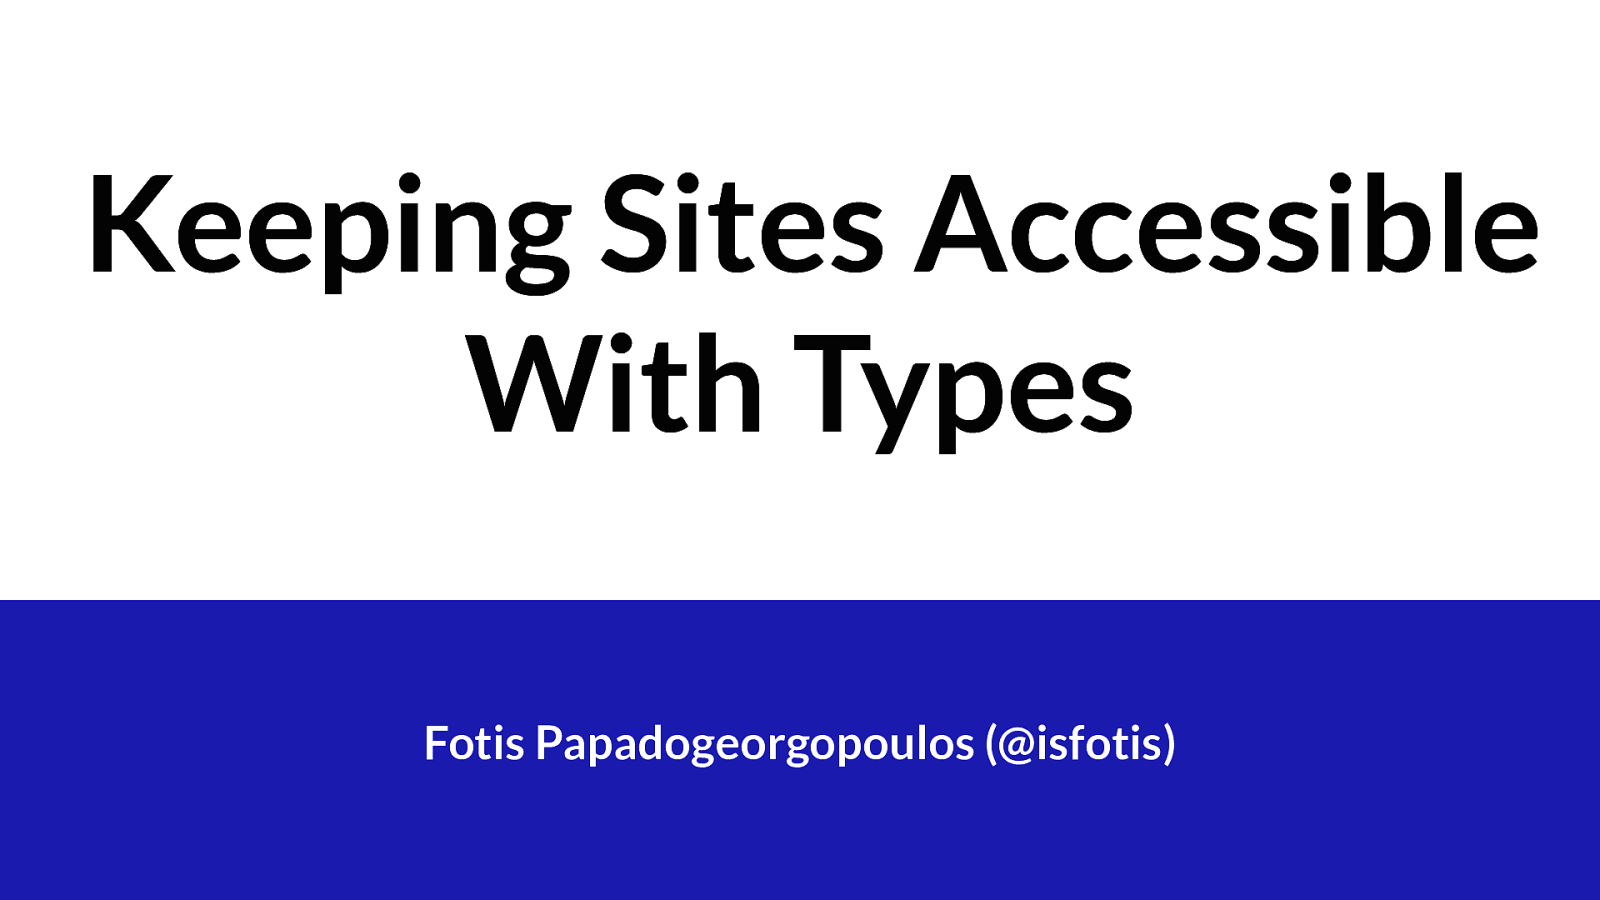 Keeping Sites Accessible With Types